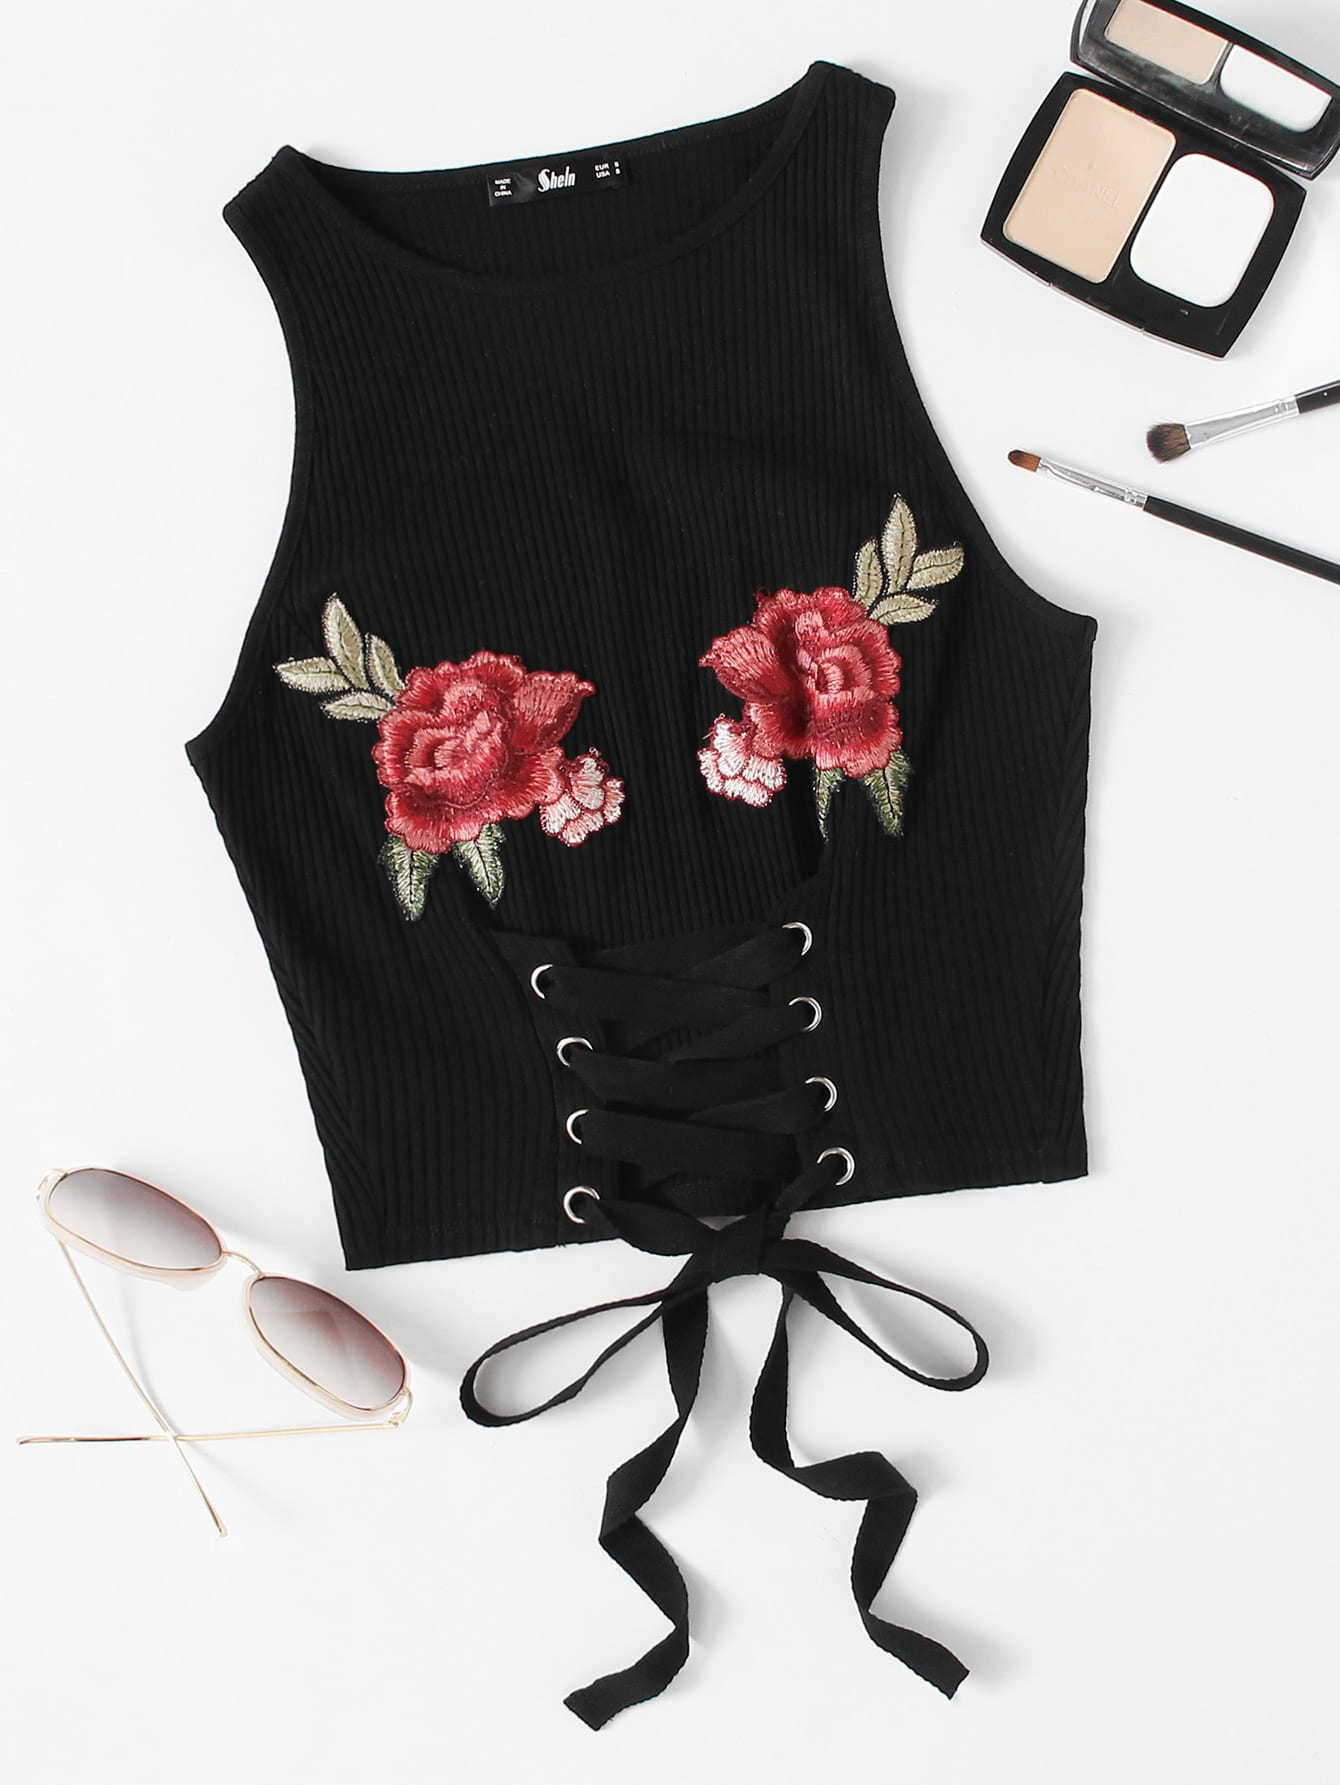 Embroidered Rose Patch Lace Up Ribbed Tank Top lace embroidered tank top